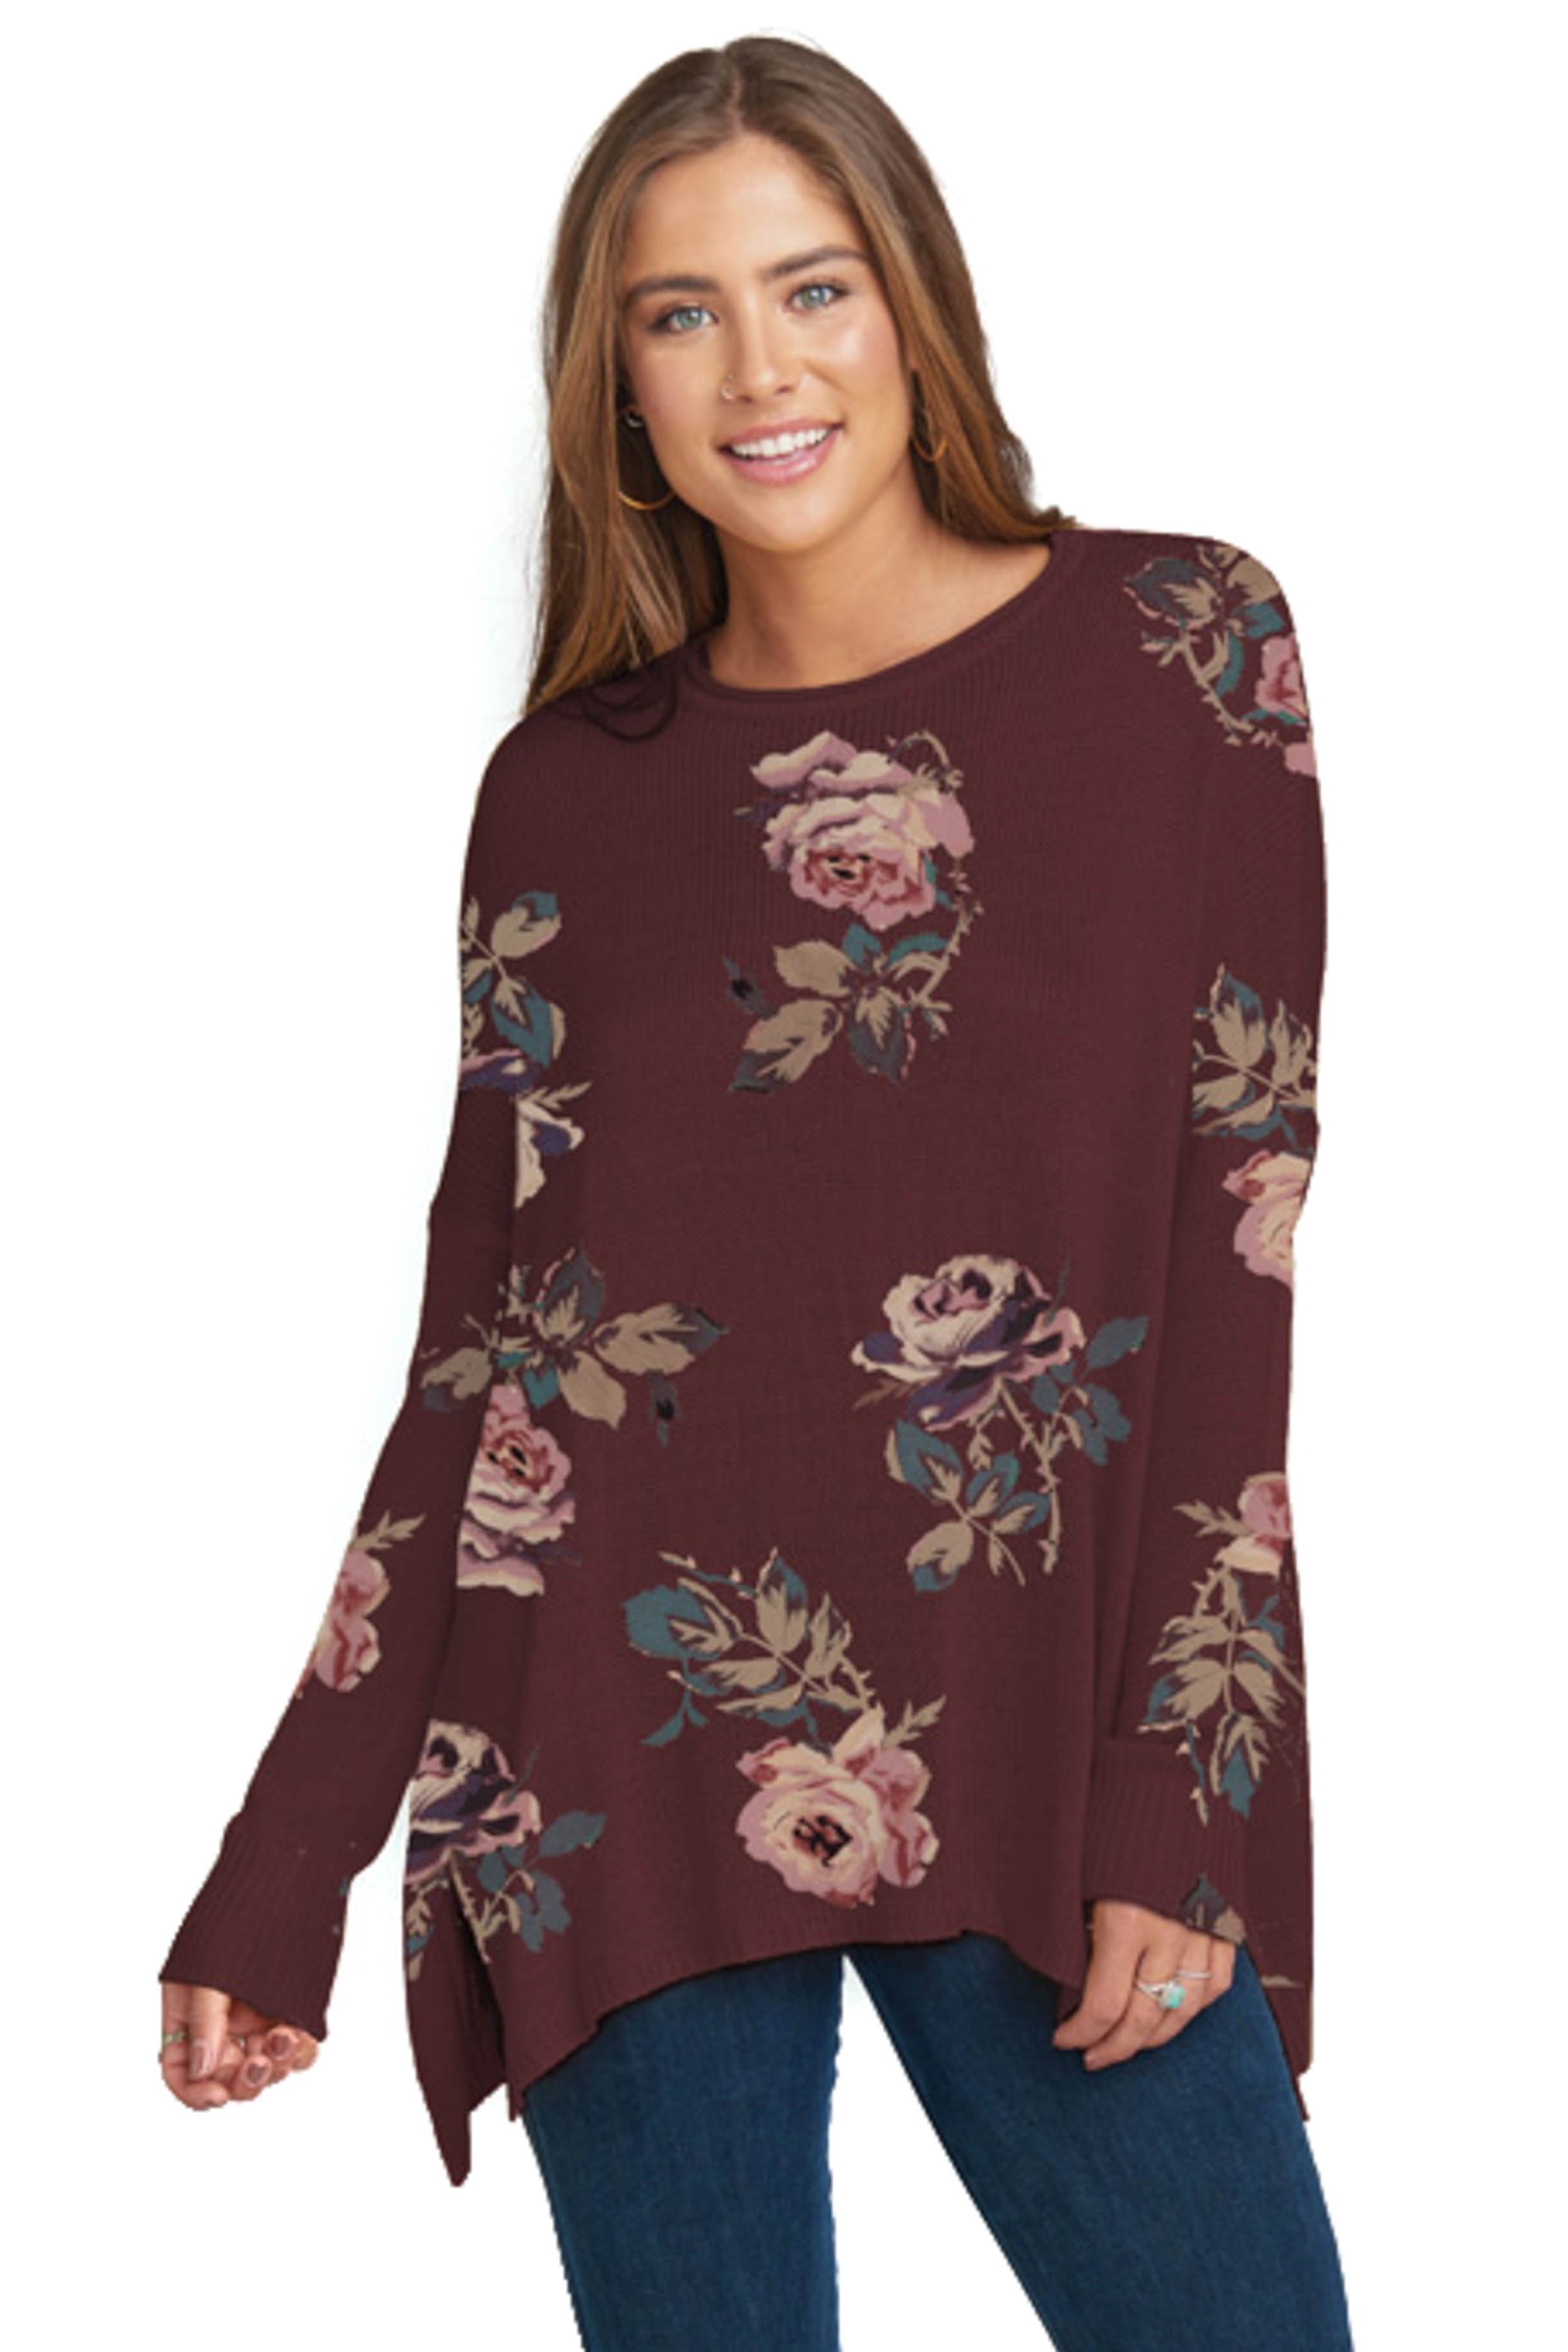 Chocolate And Roses Bonfire Sweater